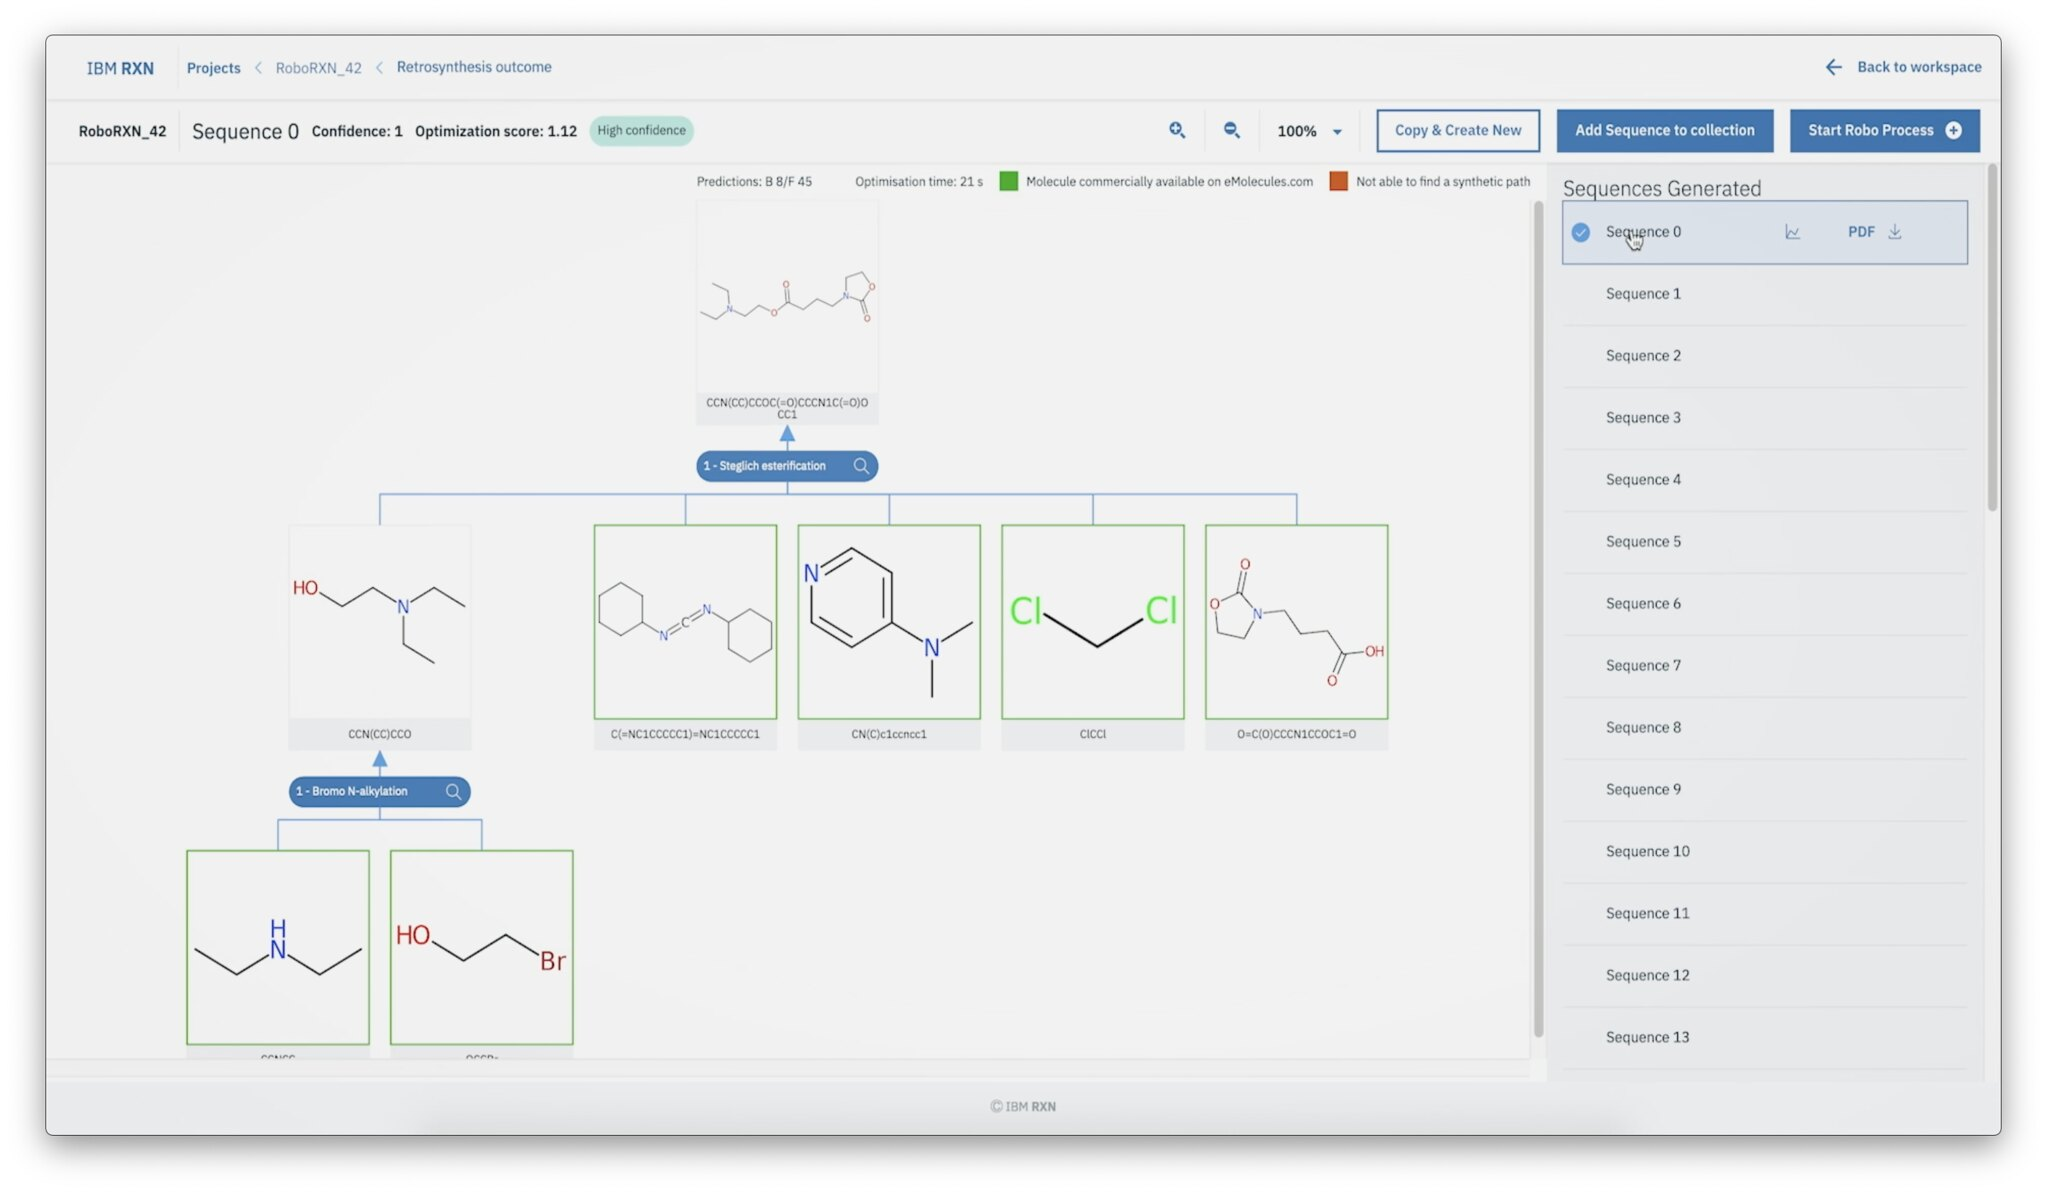 A screenshot of IBM's RoboRXN platform, which lets scientists draw the skeletal structure of the molecular compounds they want to make.